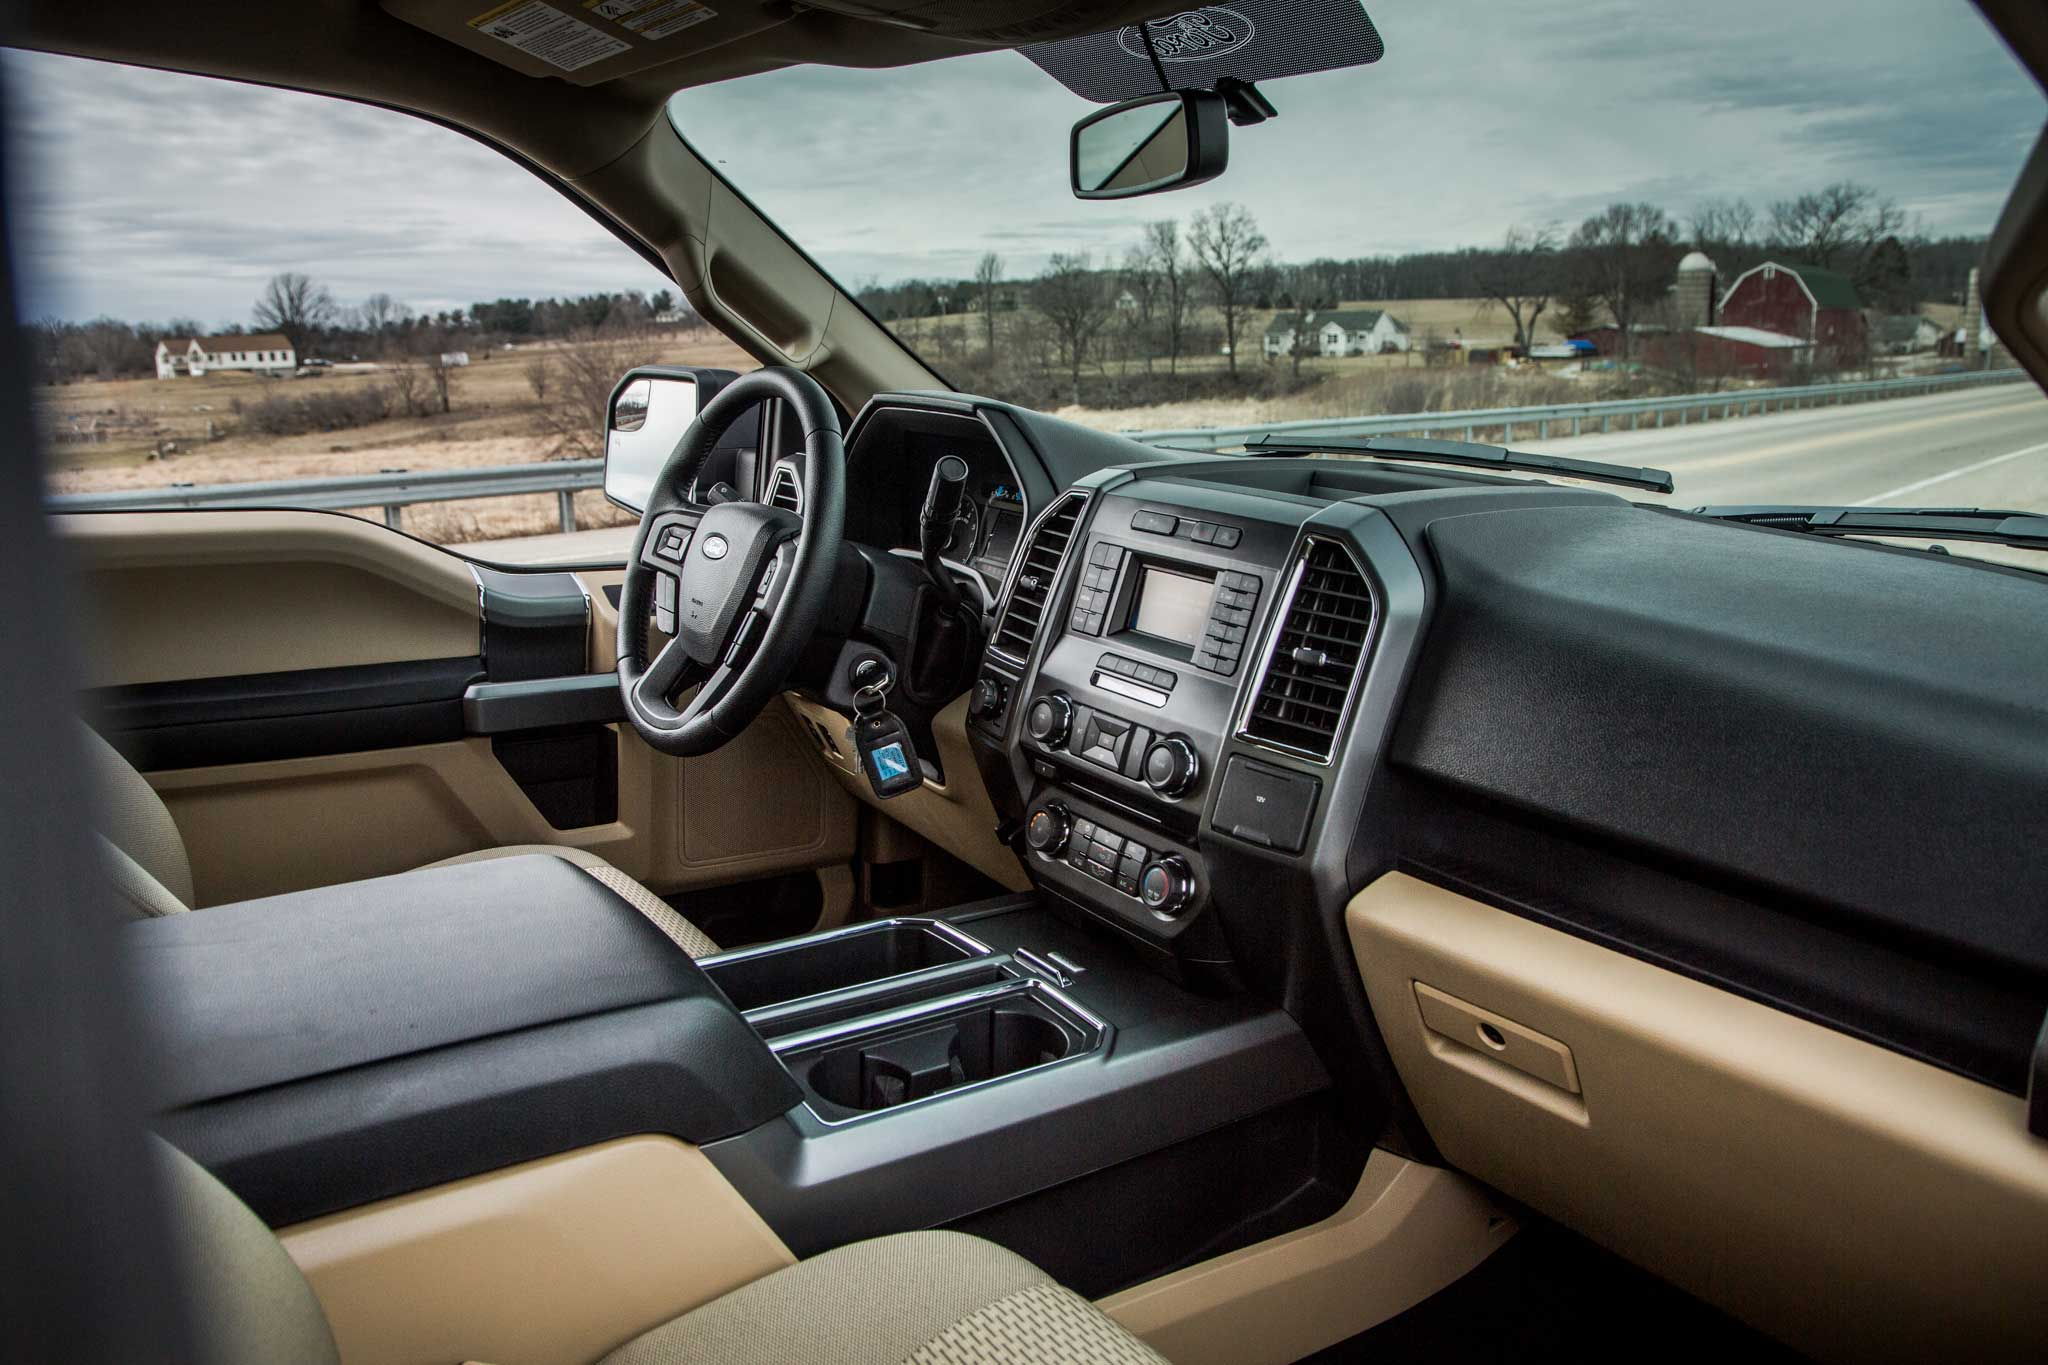 2015 Ford F-150 Review - El Lobo - Lowrider